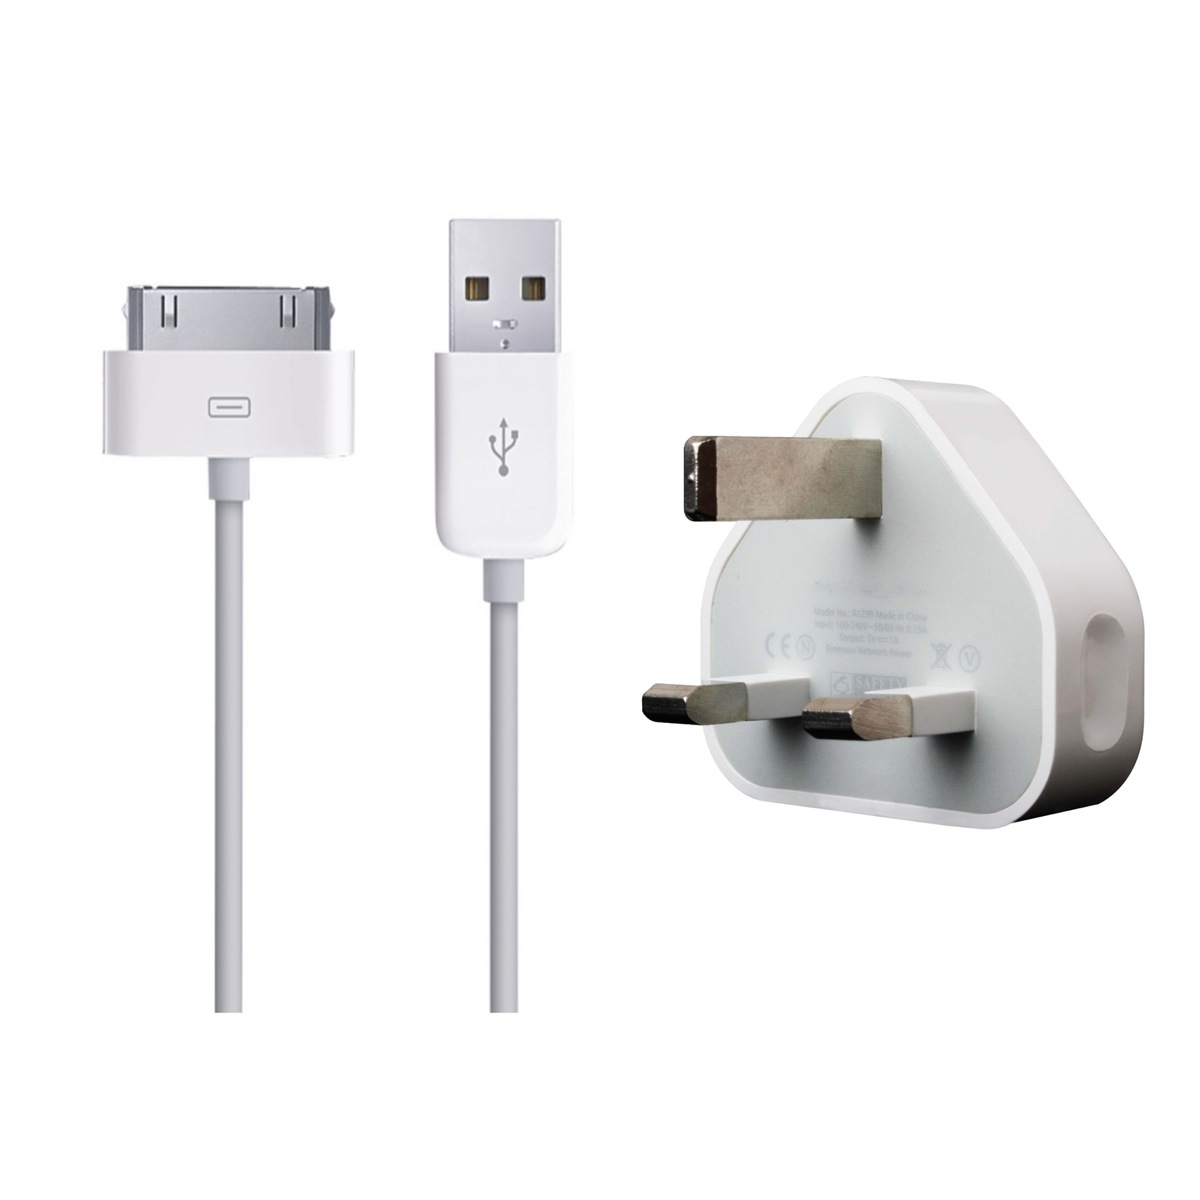 Following Two Incidents, Apple Posts A Charger Advisory Note In China